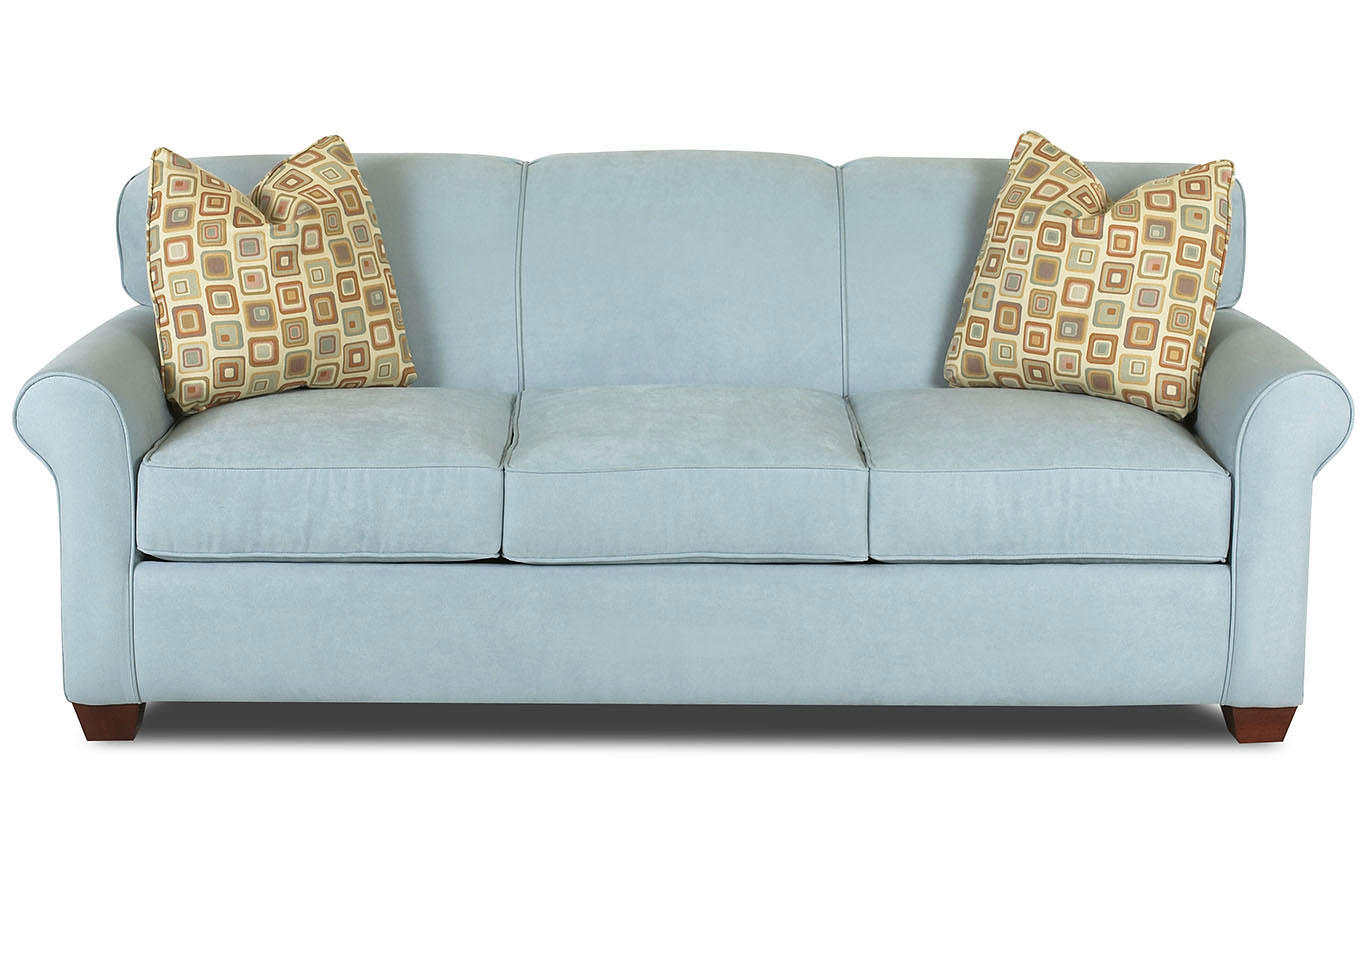 Mayhew Sky Blue Stationary Fabric Sofa,Klaussner Home Furnishings